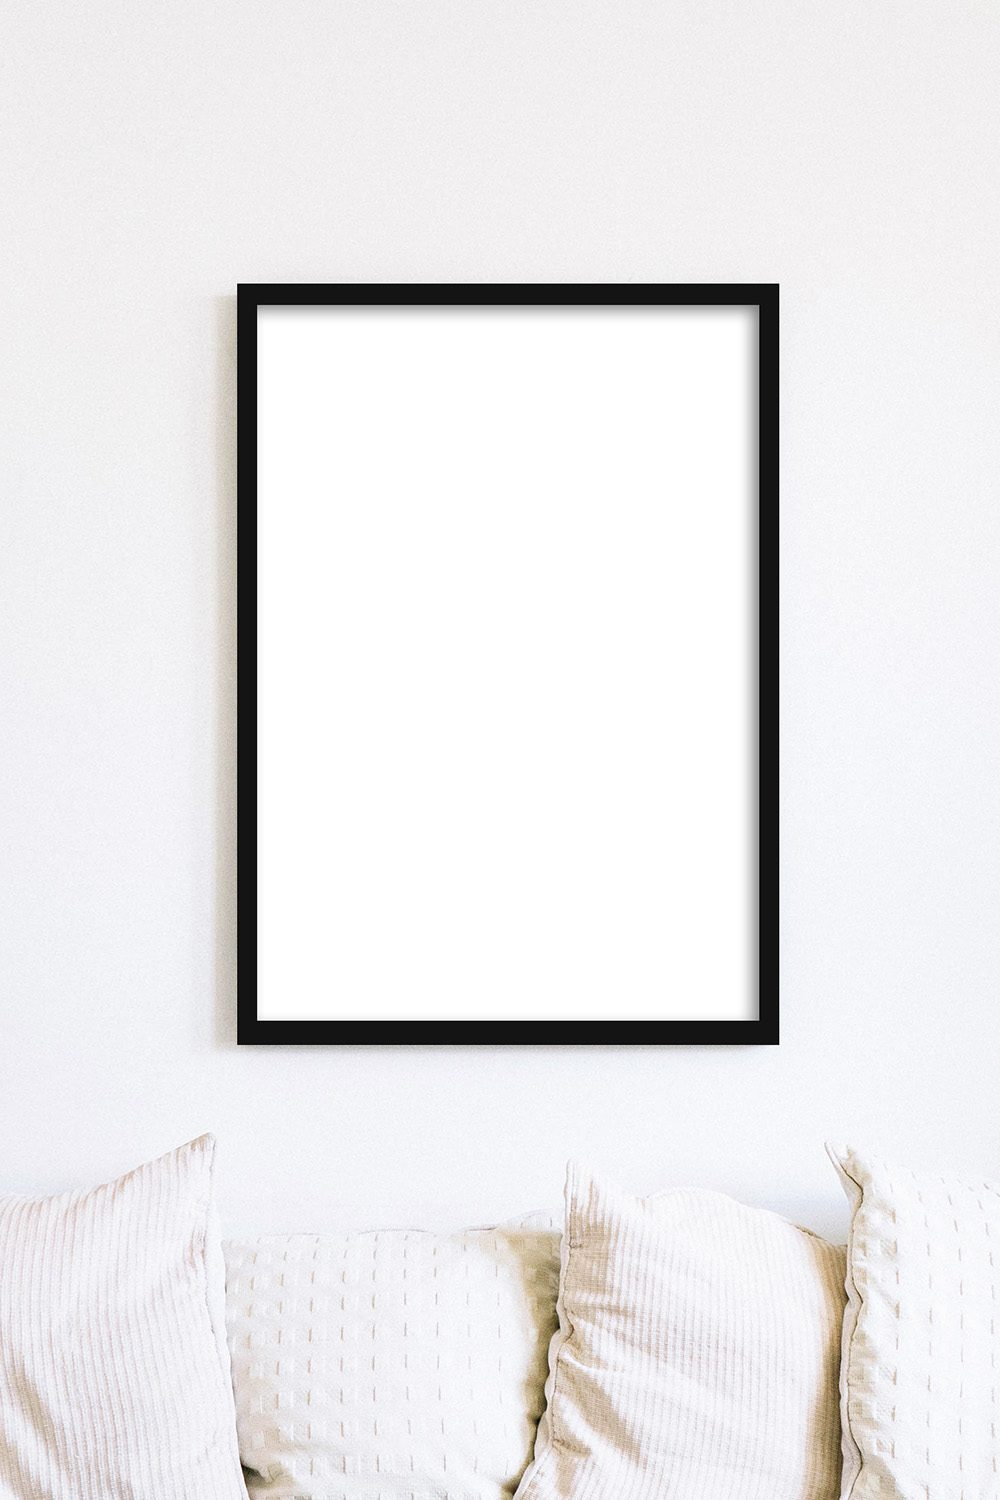 22-poster-frame-on-wall-mockup-template-psd